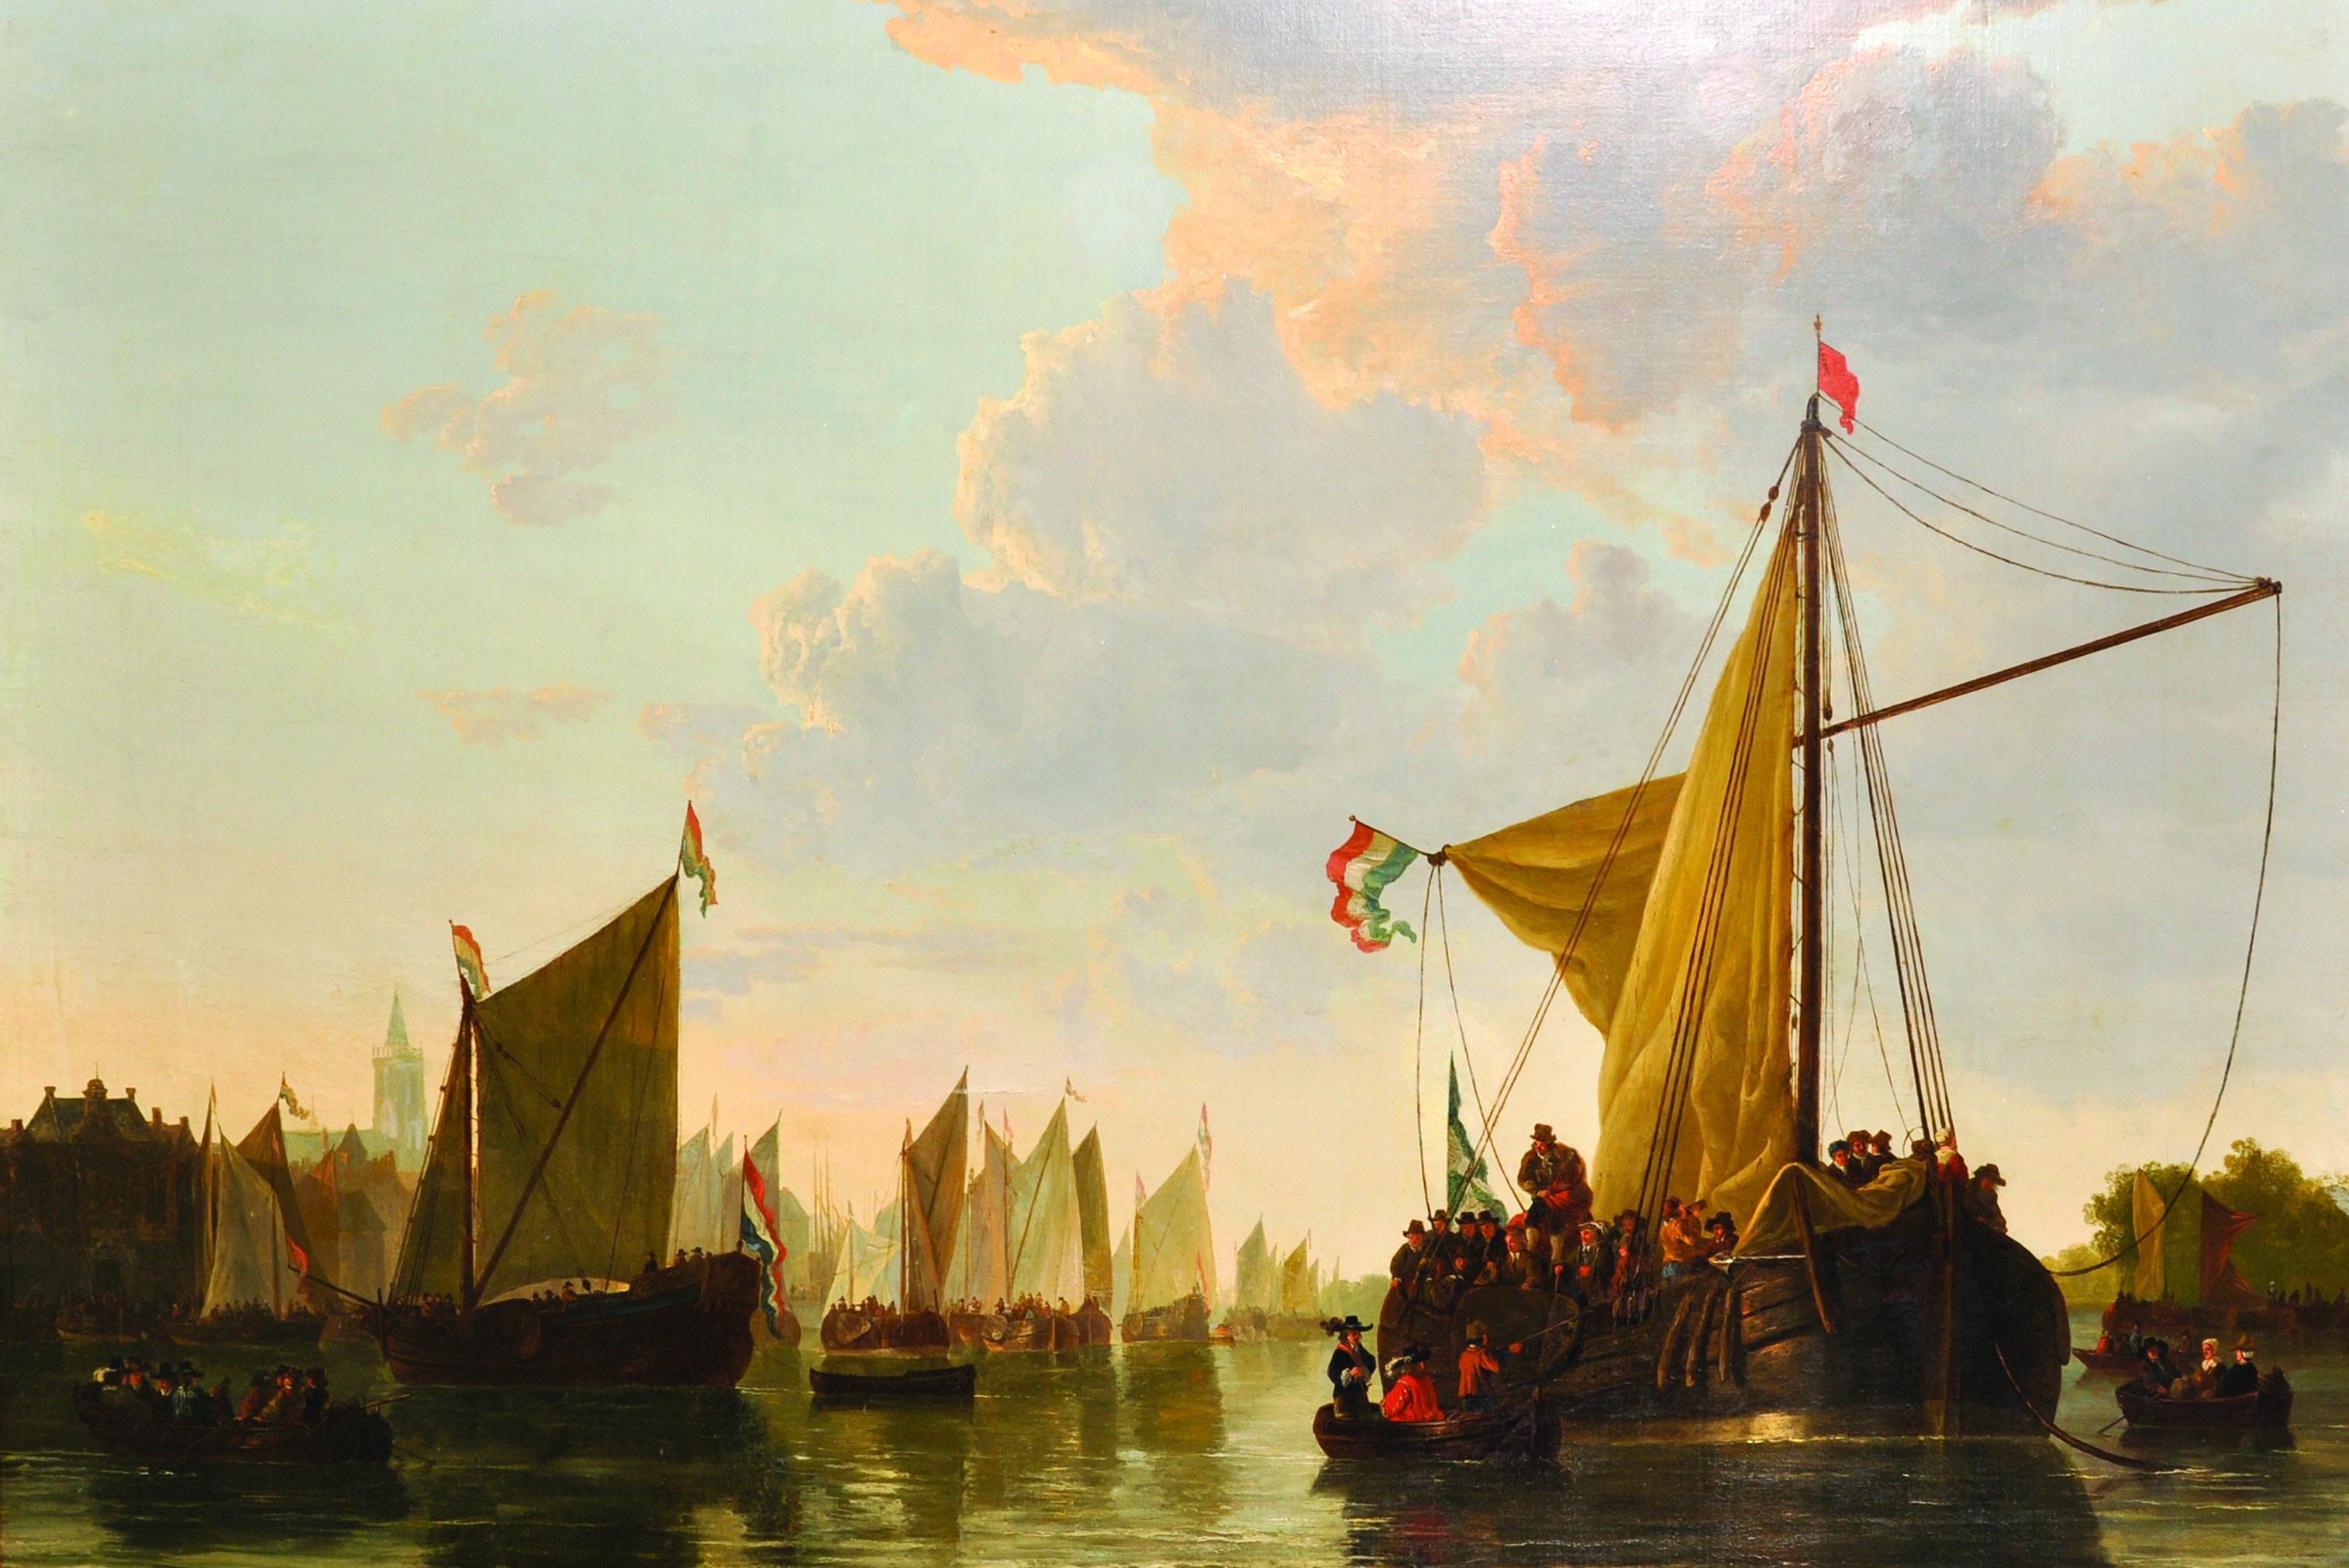 Abraham Van Stry (Strij) (1753-1826) Dutch. A Flotilla of Boats off the Dutch Coast,/Auctioneers and Valuers